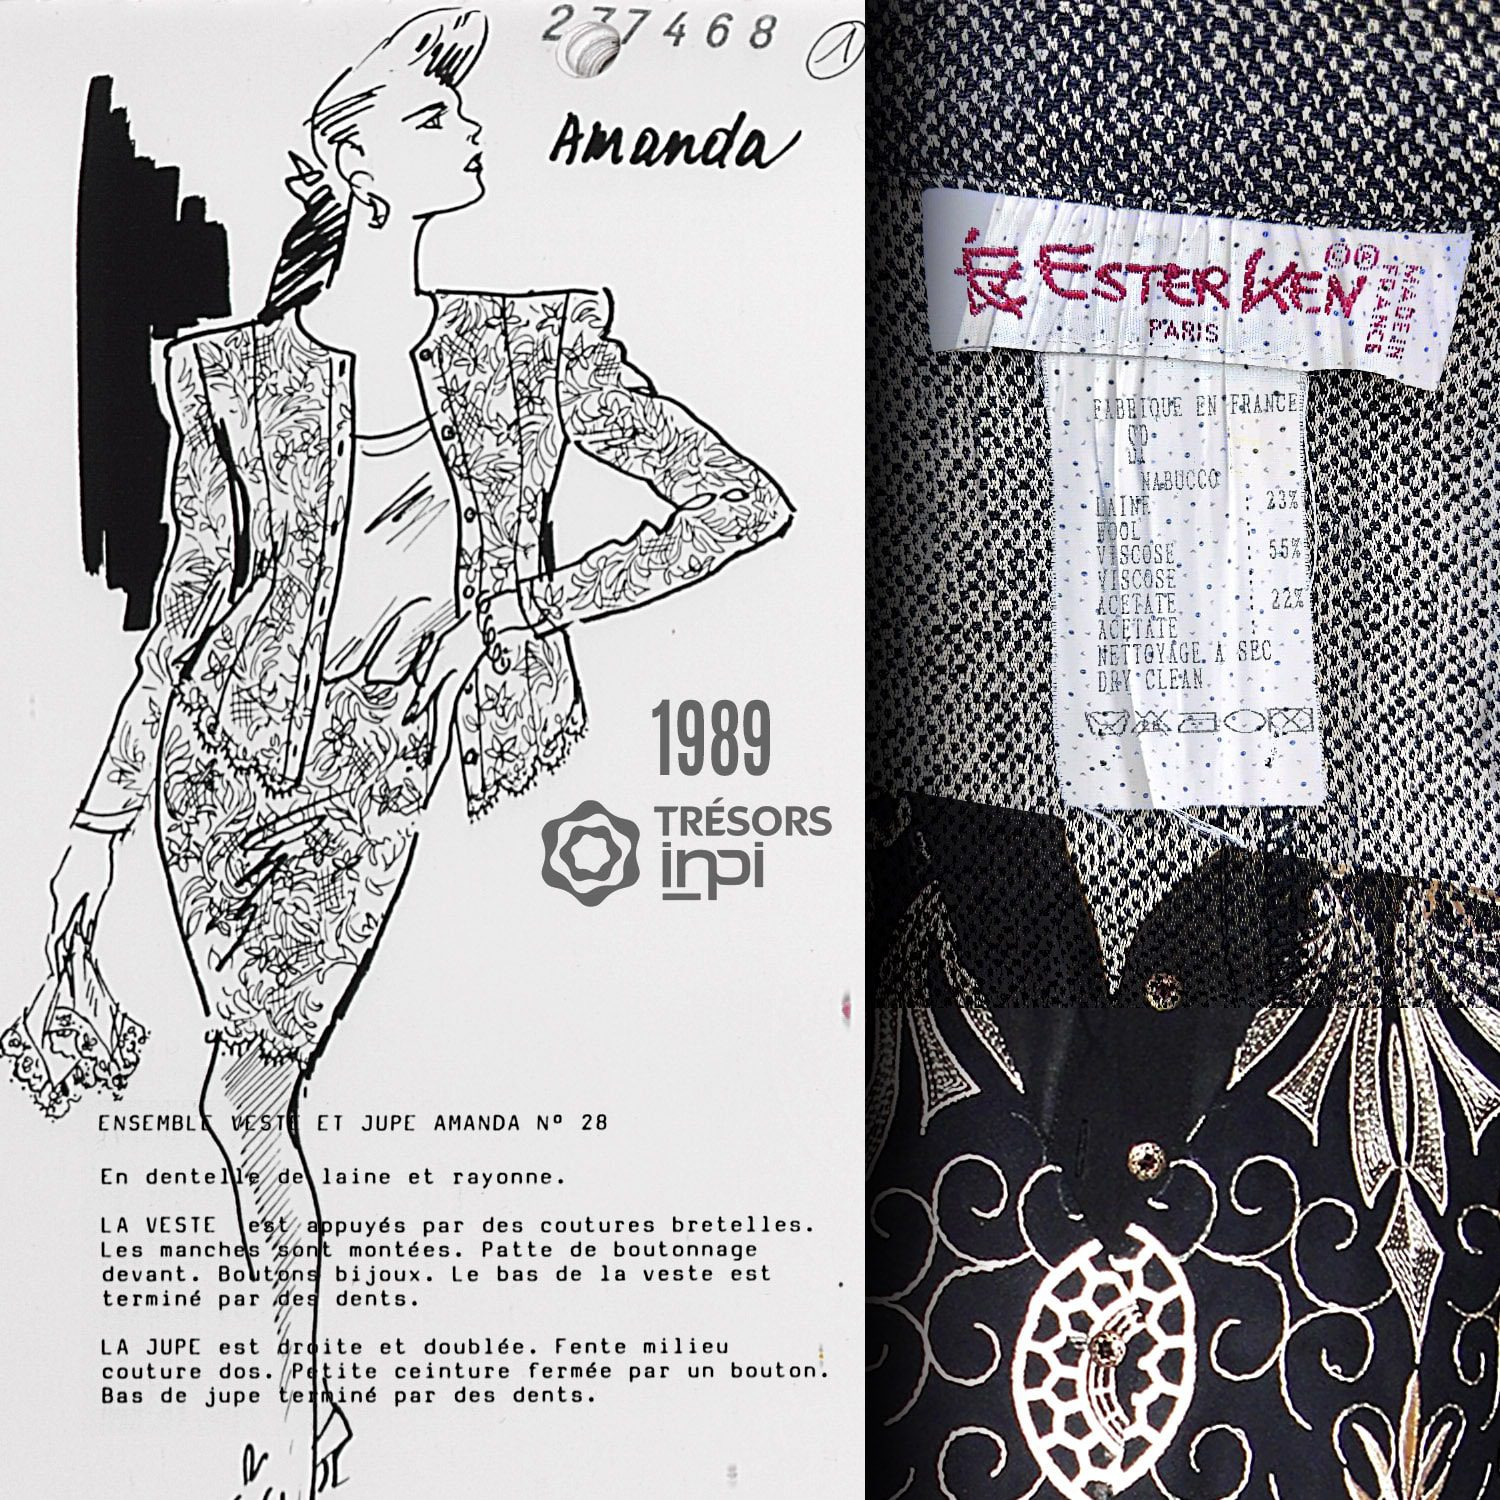 Ester Ken 1989 fashion inventions - INPI archives